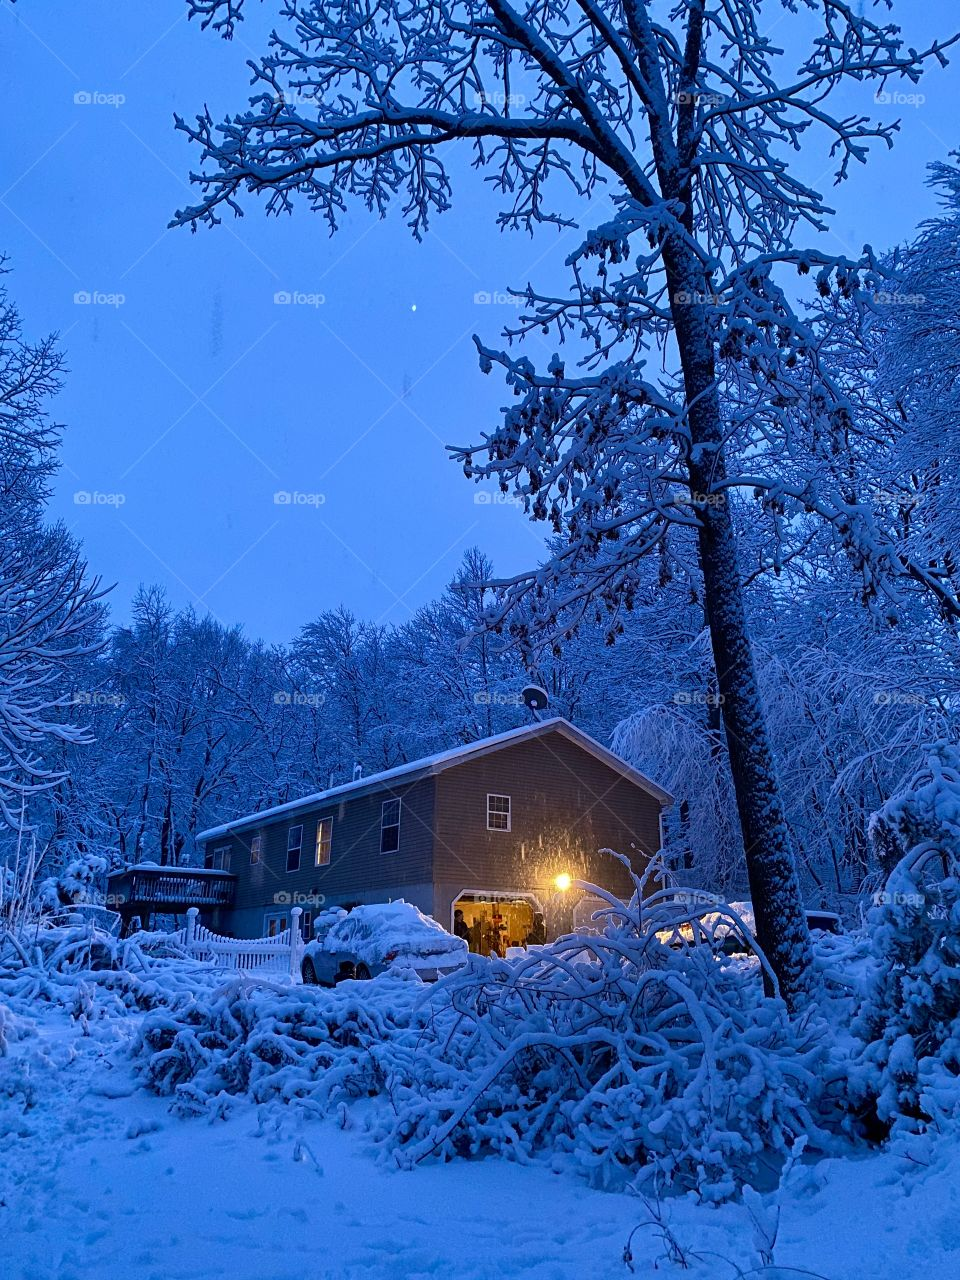 Snow covered scenery and house with garage light on during a heavy snow storm